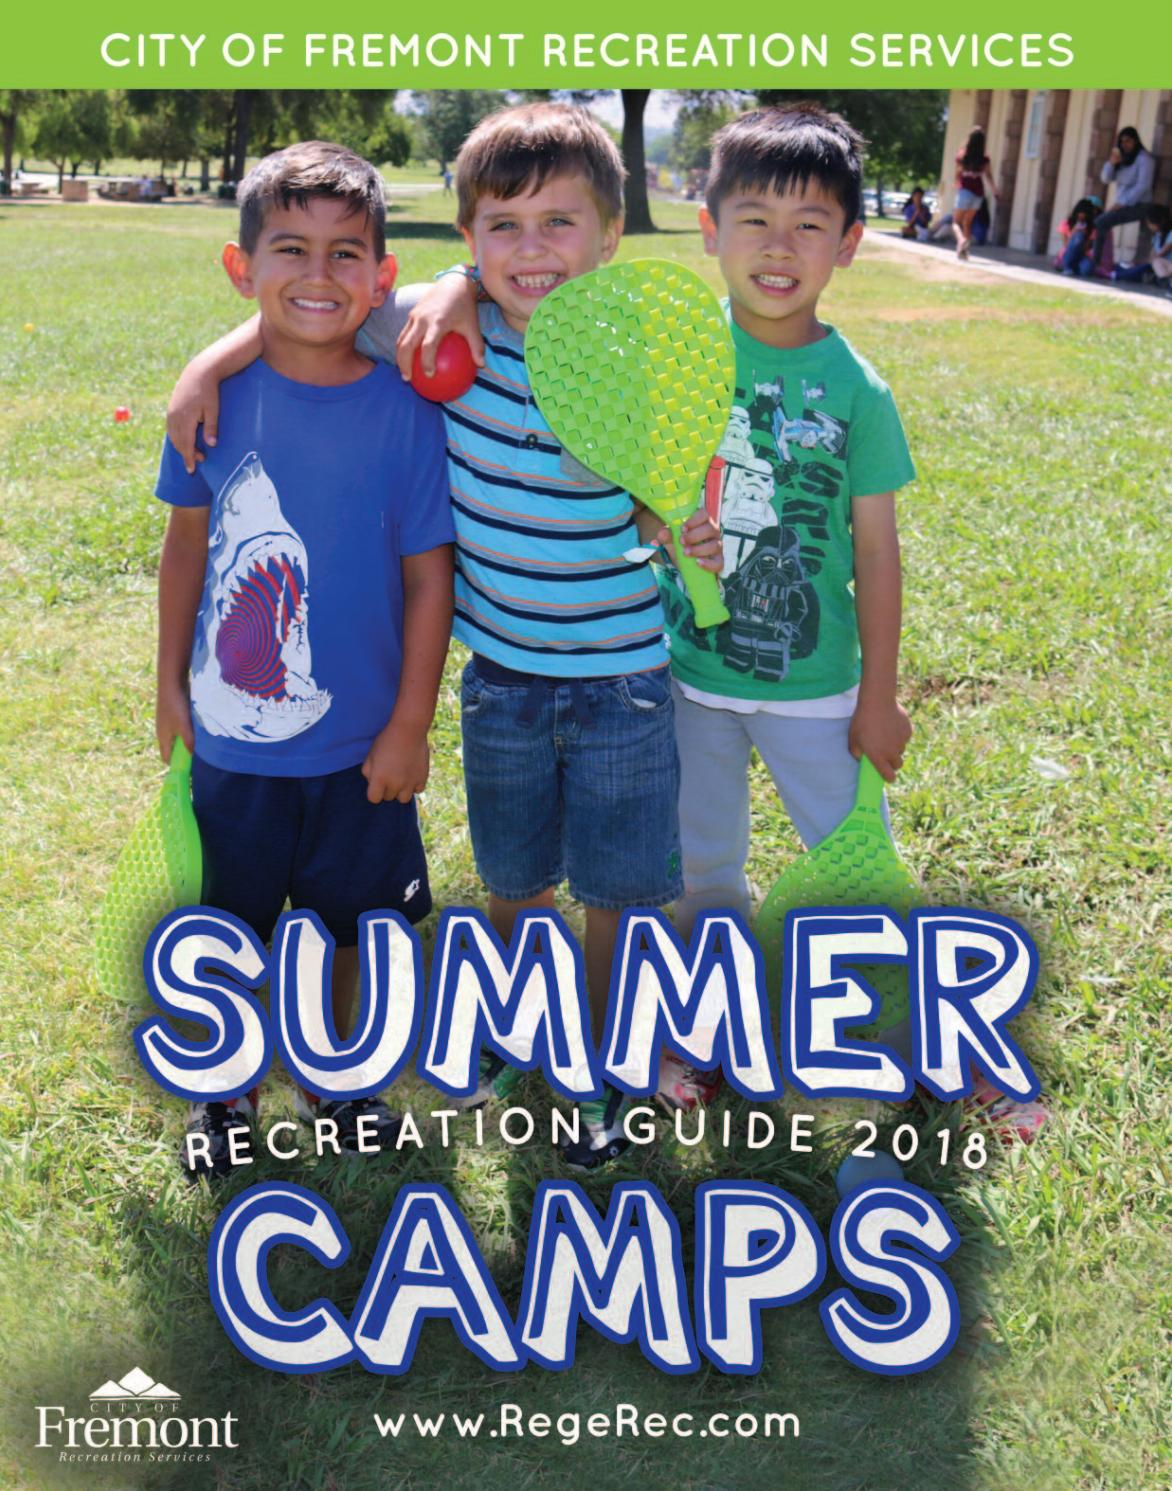 Recreation Guide: Summer Camps 2018 by City of Fremont Recreation Services  - issuu